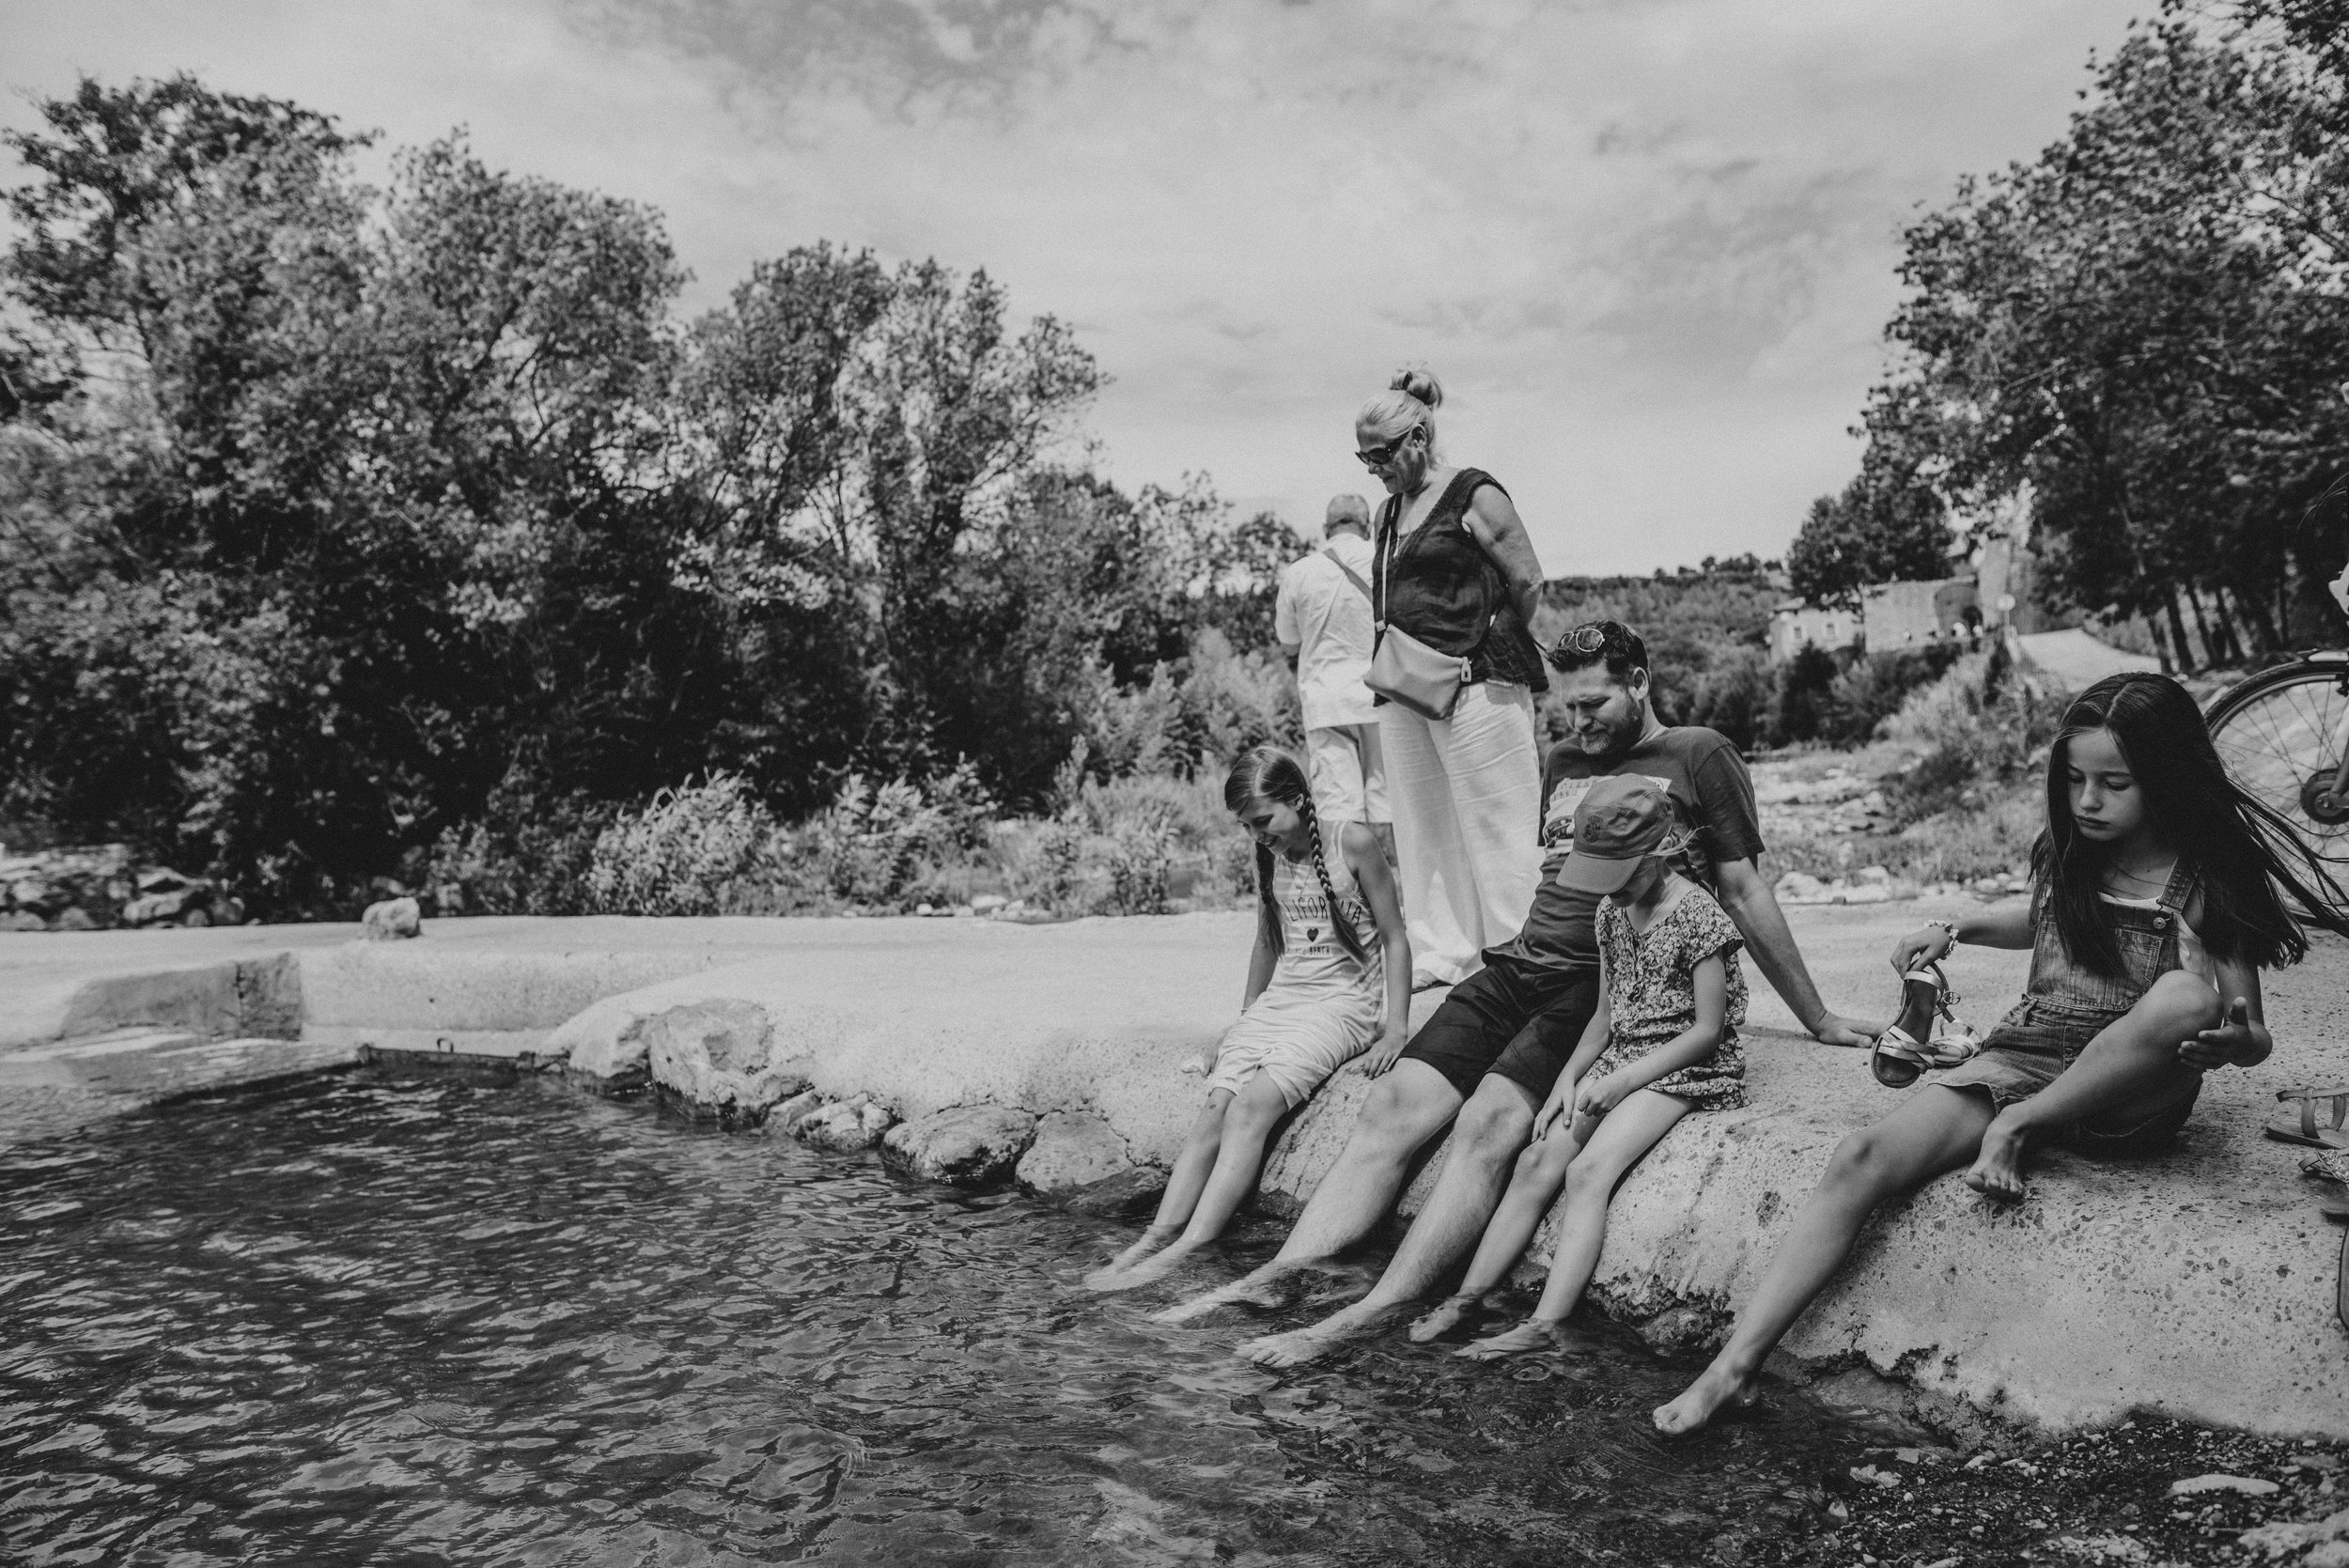 Family paddle in river in Lagrasse France Essex UK Documentary Portrait Photographer